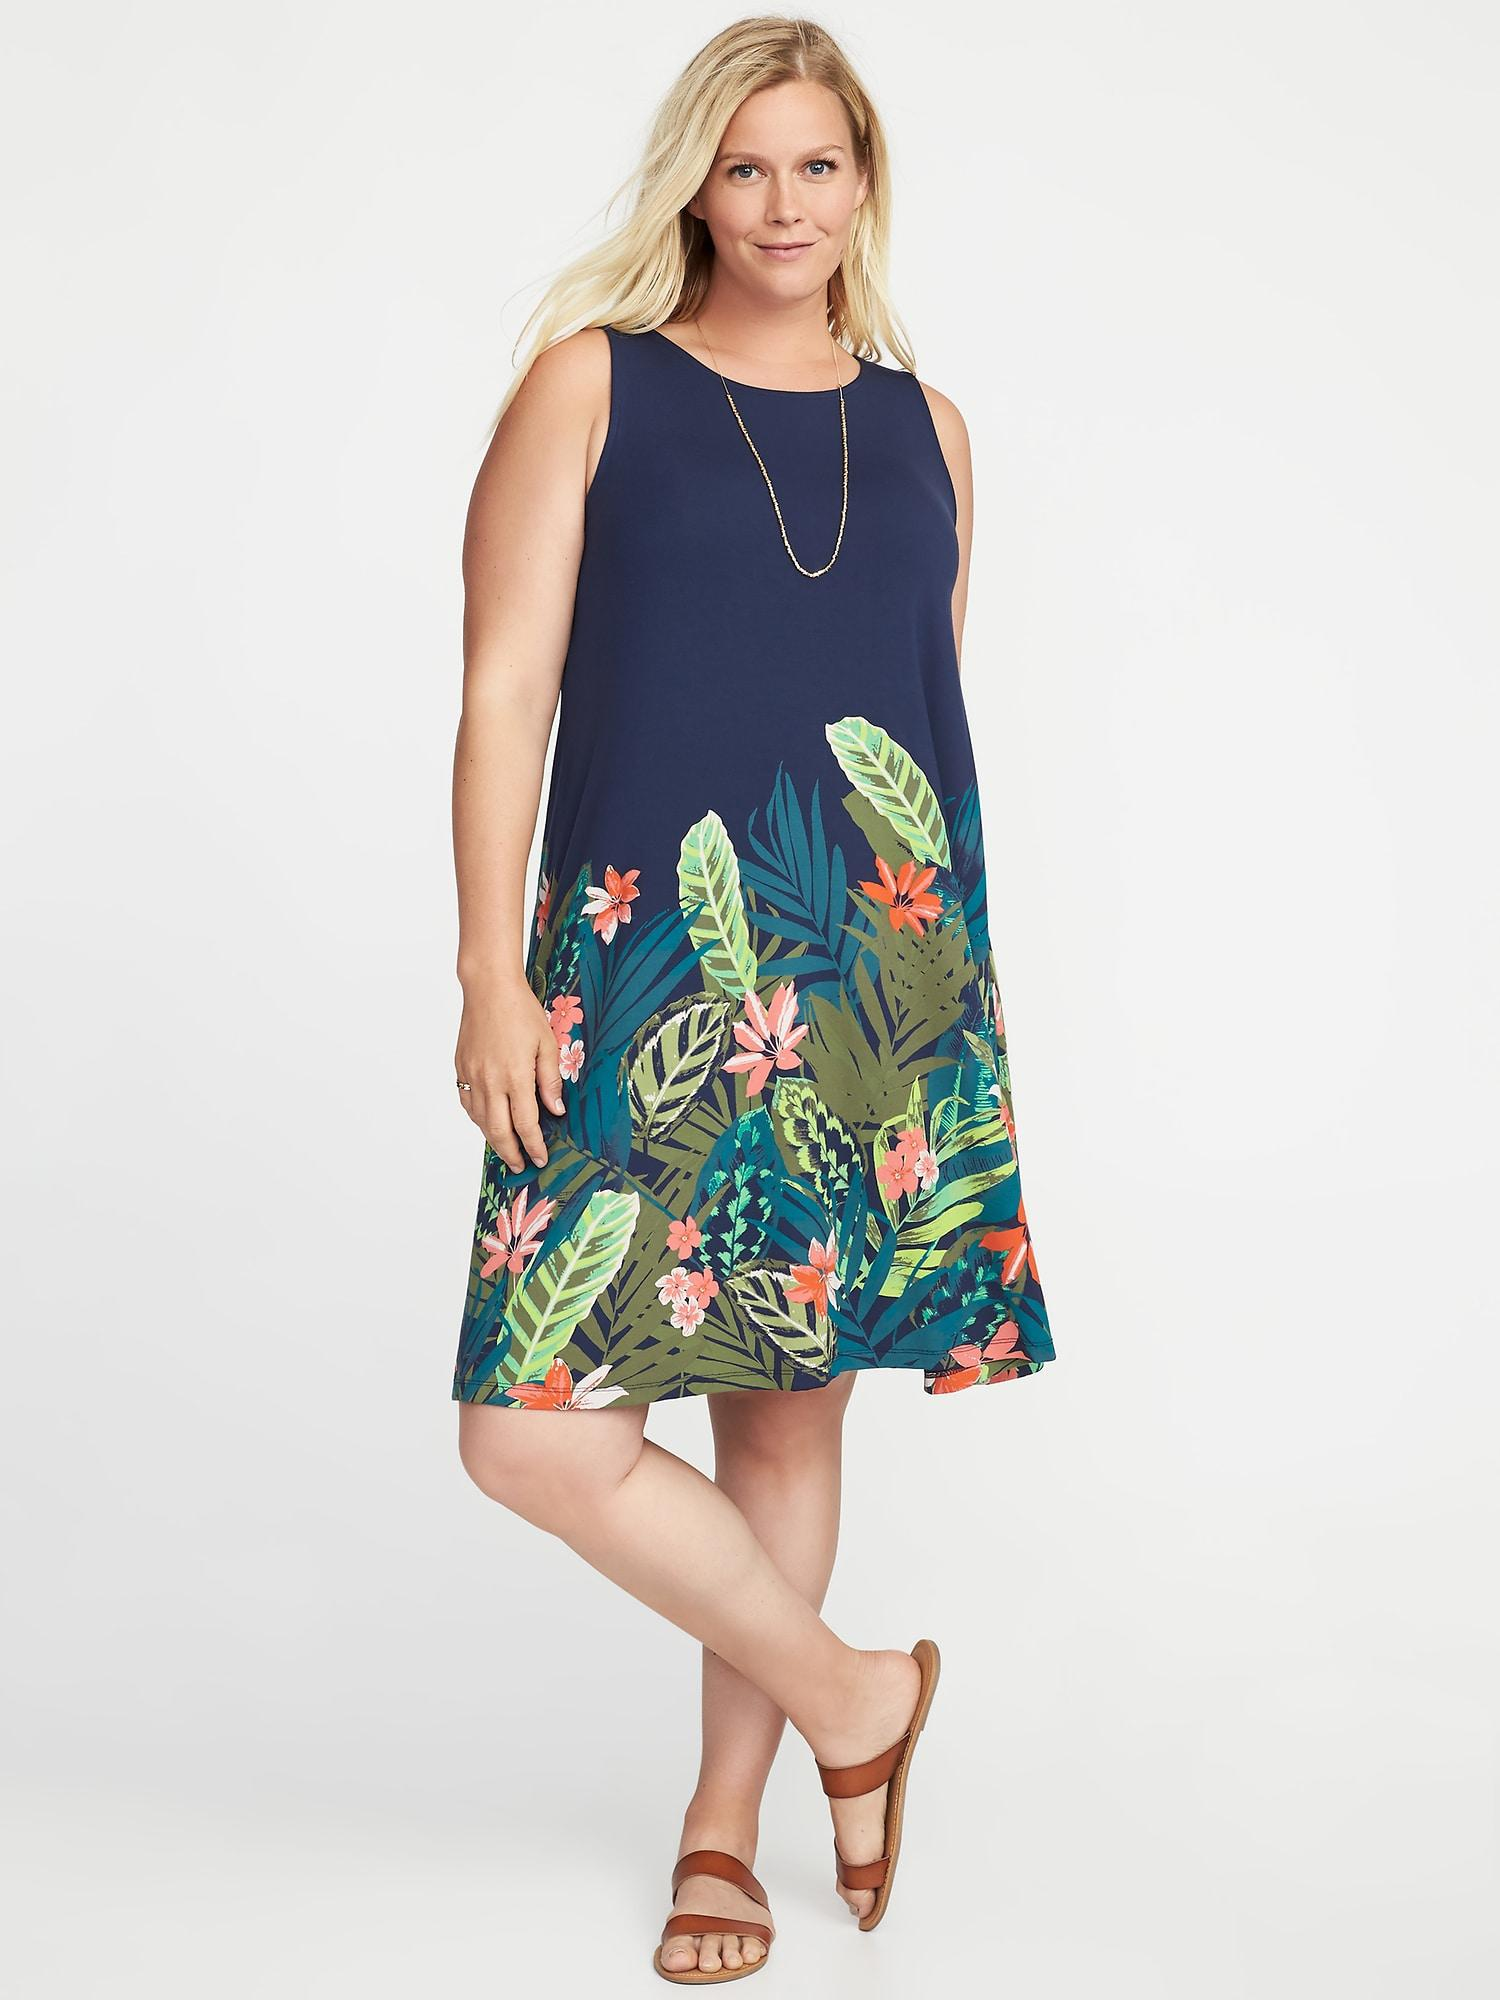 dc0539d2b3a Gallery. Previously sold at  Old Navy · Women s Jersey Dresses Women s Navy  Dresses Women s Swing ...